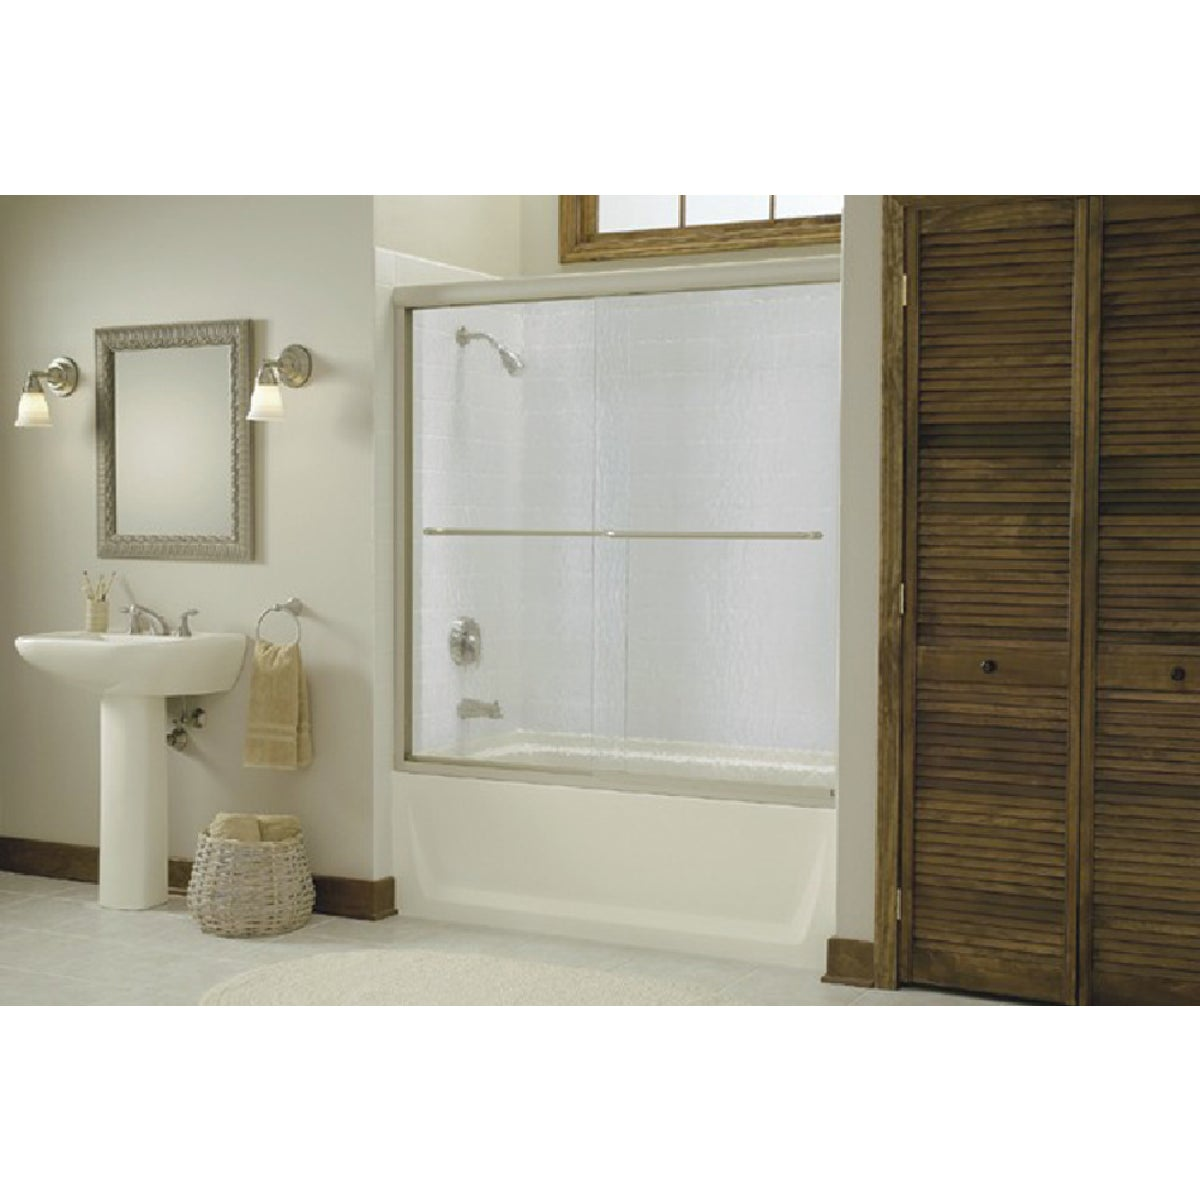 SILVER BY-PASS TUB DOOR - 5425-59S-G05 by Sterling Doors